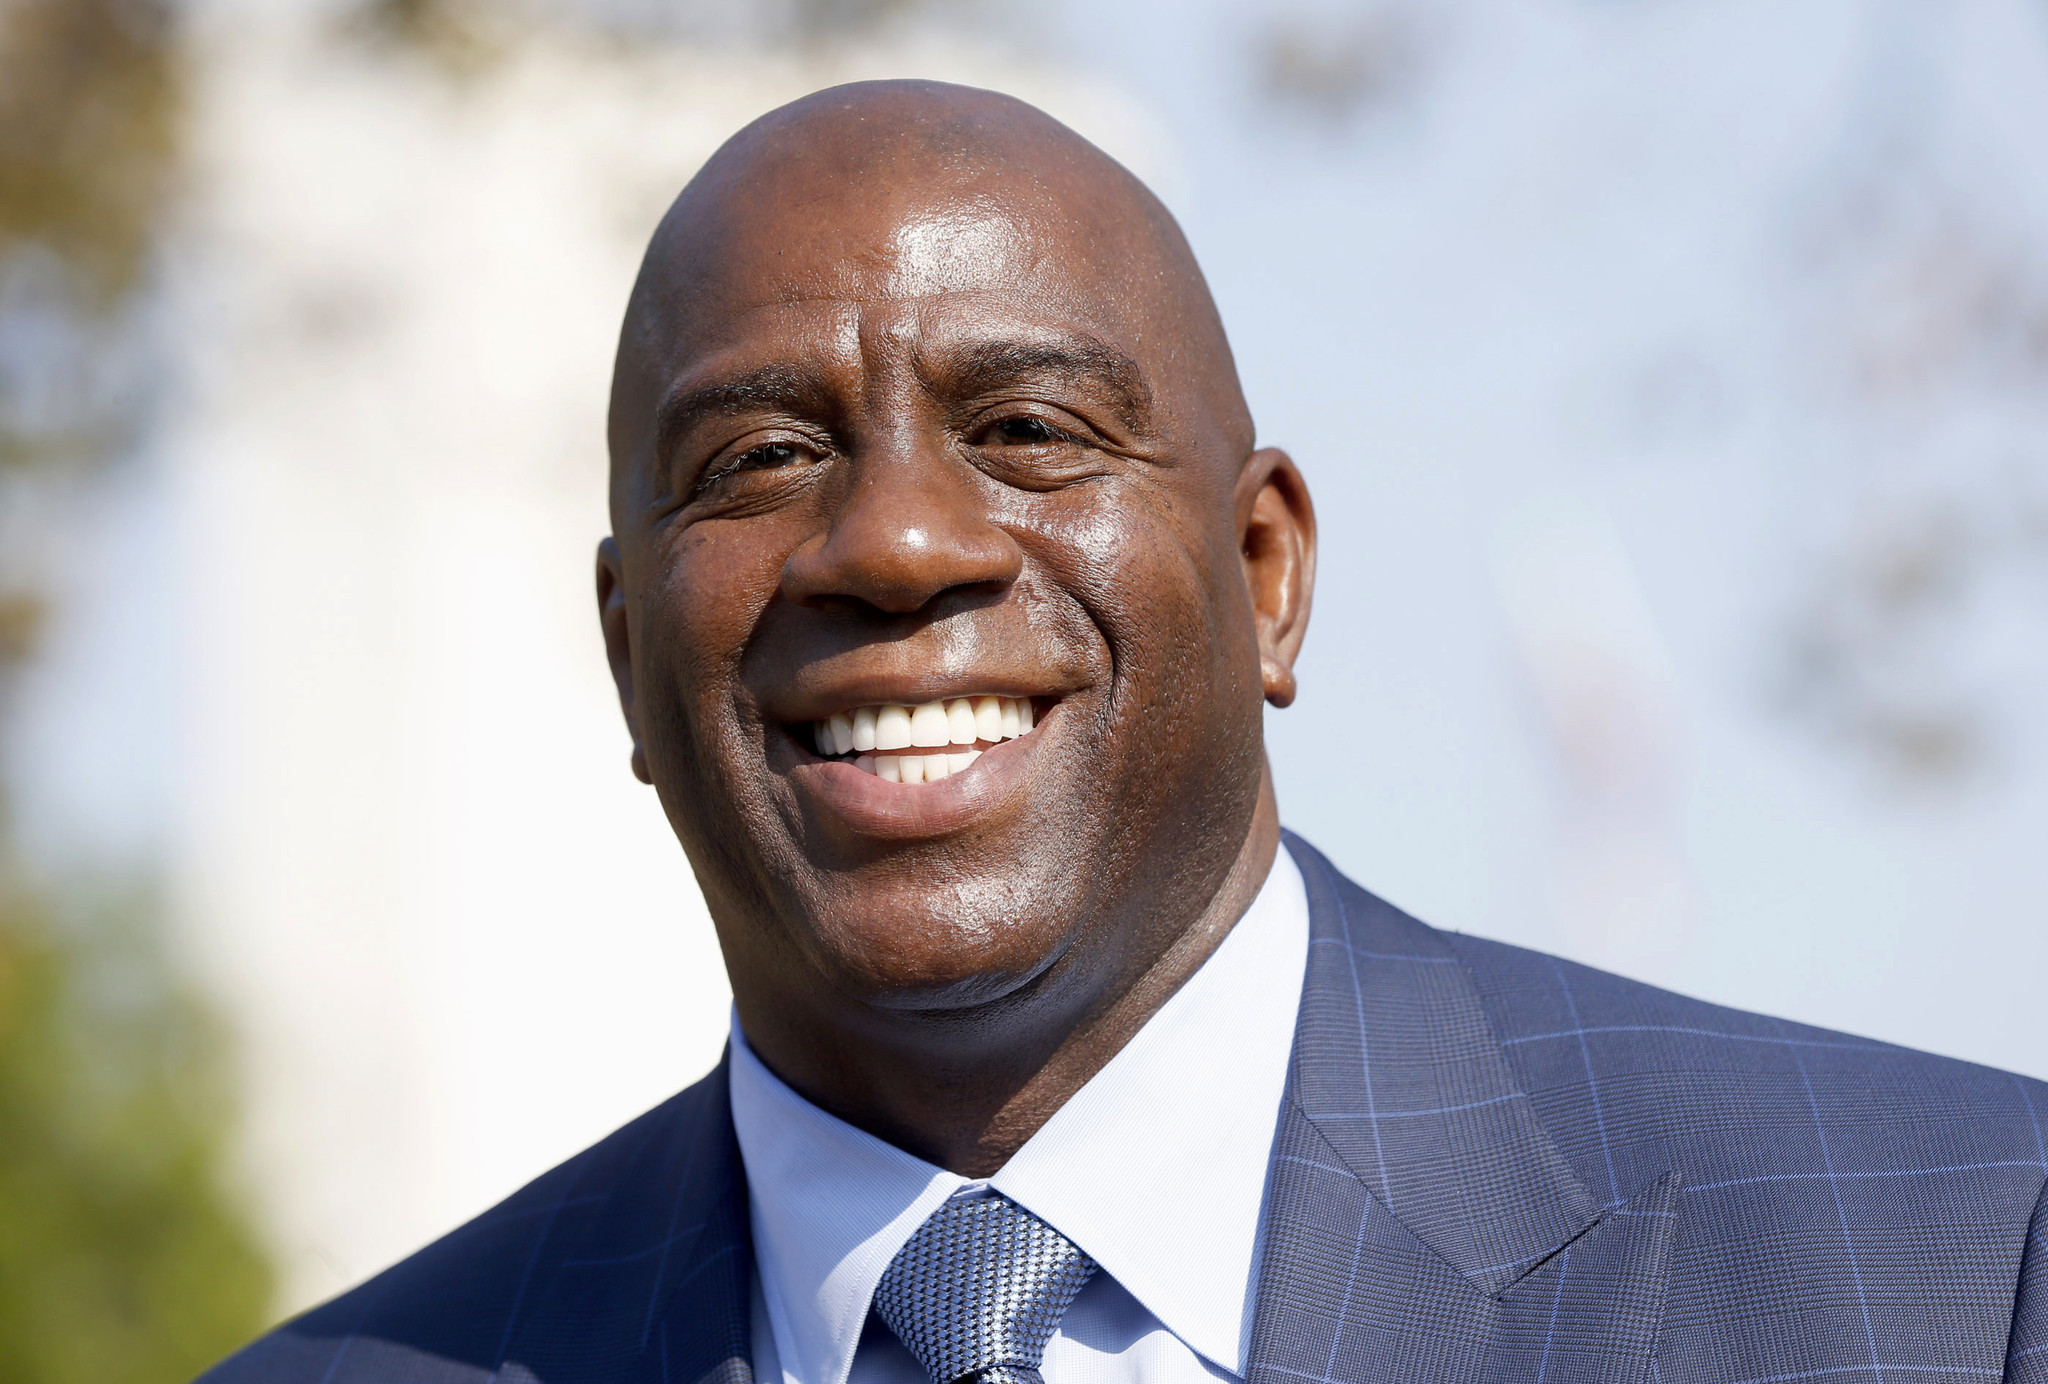 Ct-lakers-magic-johnson-tweets-20170222